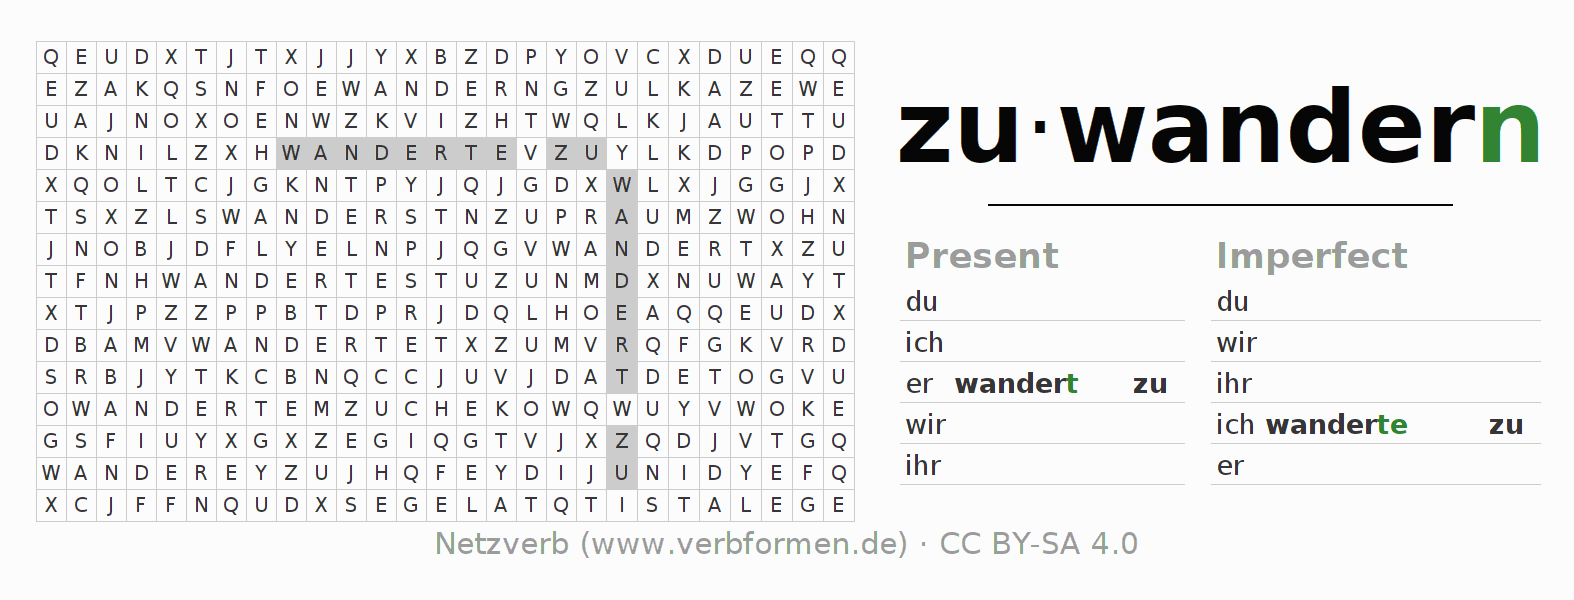 Word search puzzle for the conjugation of the verb zuwandern